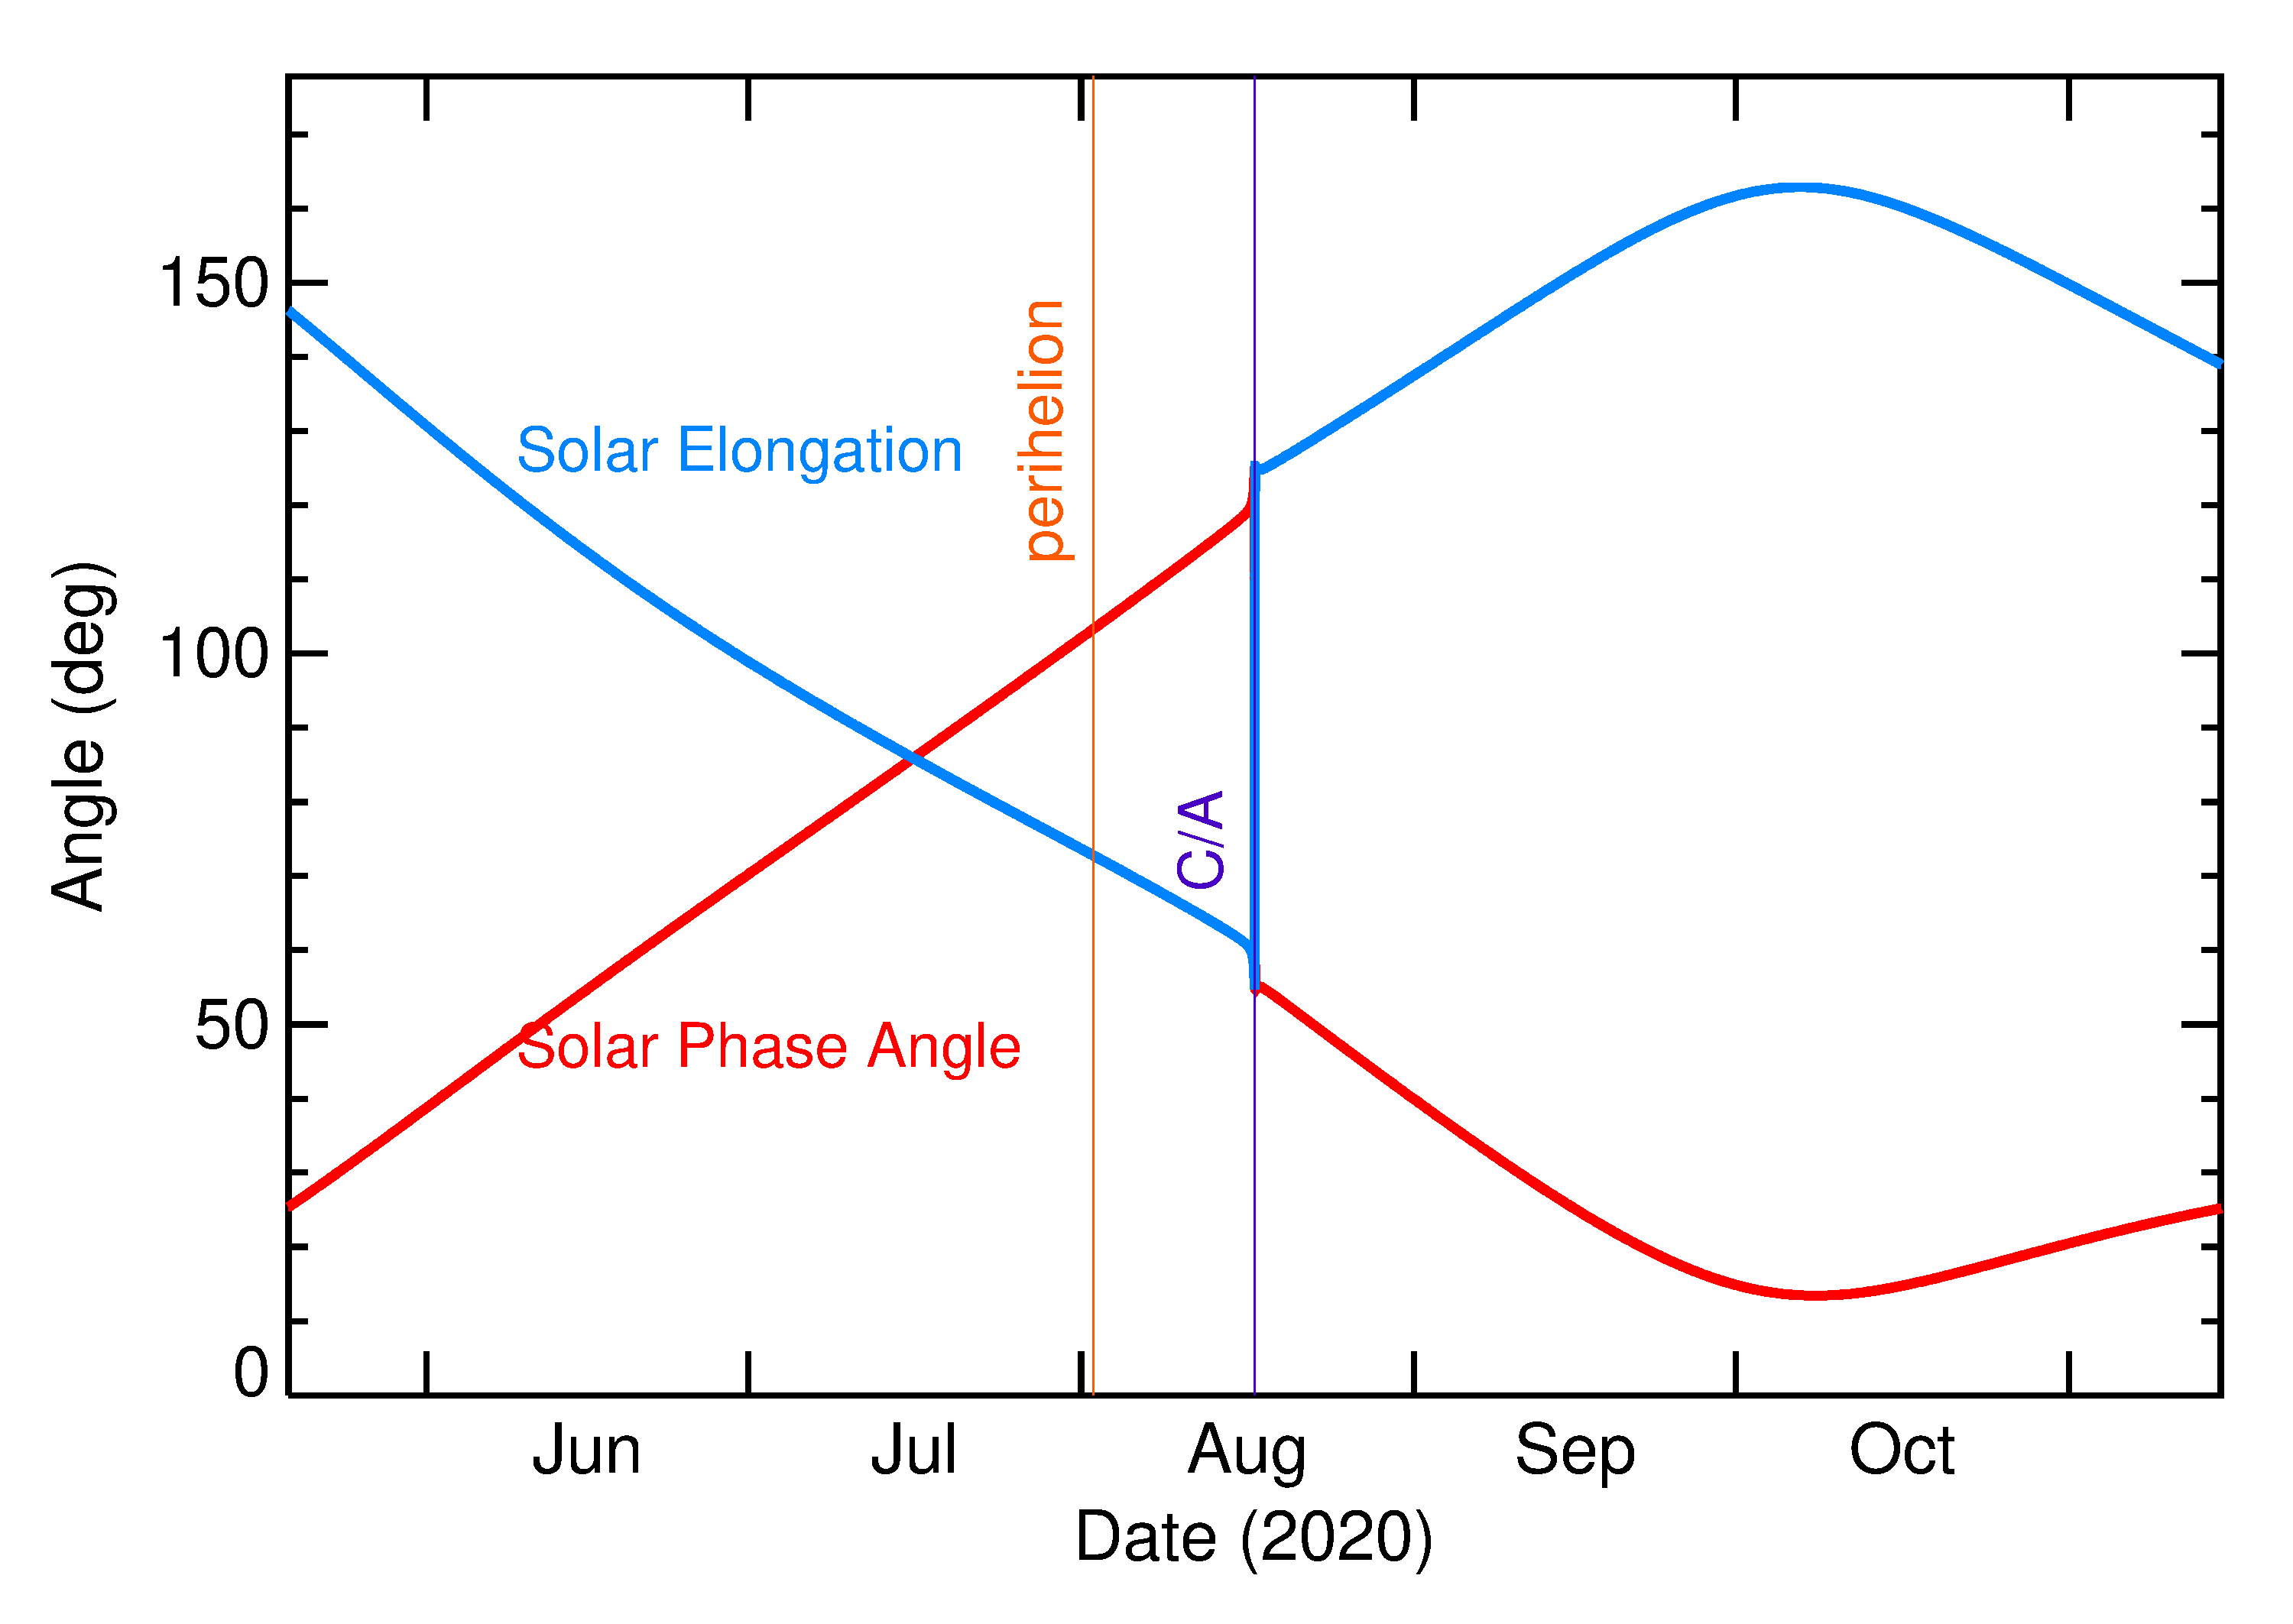 Solar Elongation and Solar Phase Angle of 2020 QG in the months around closest approach